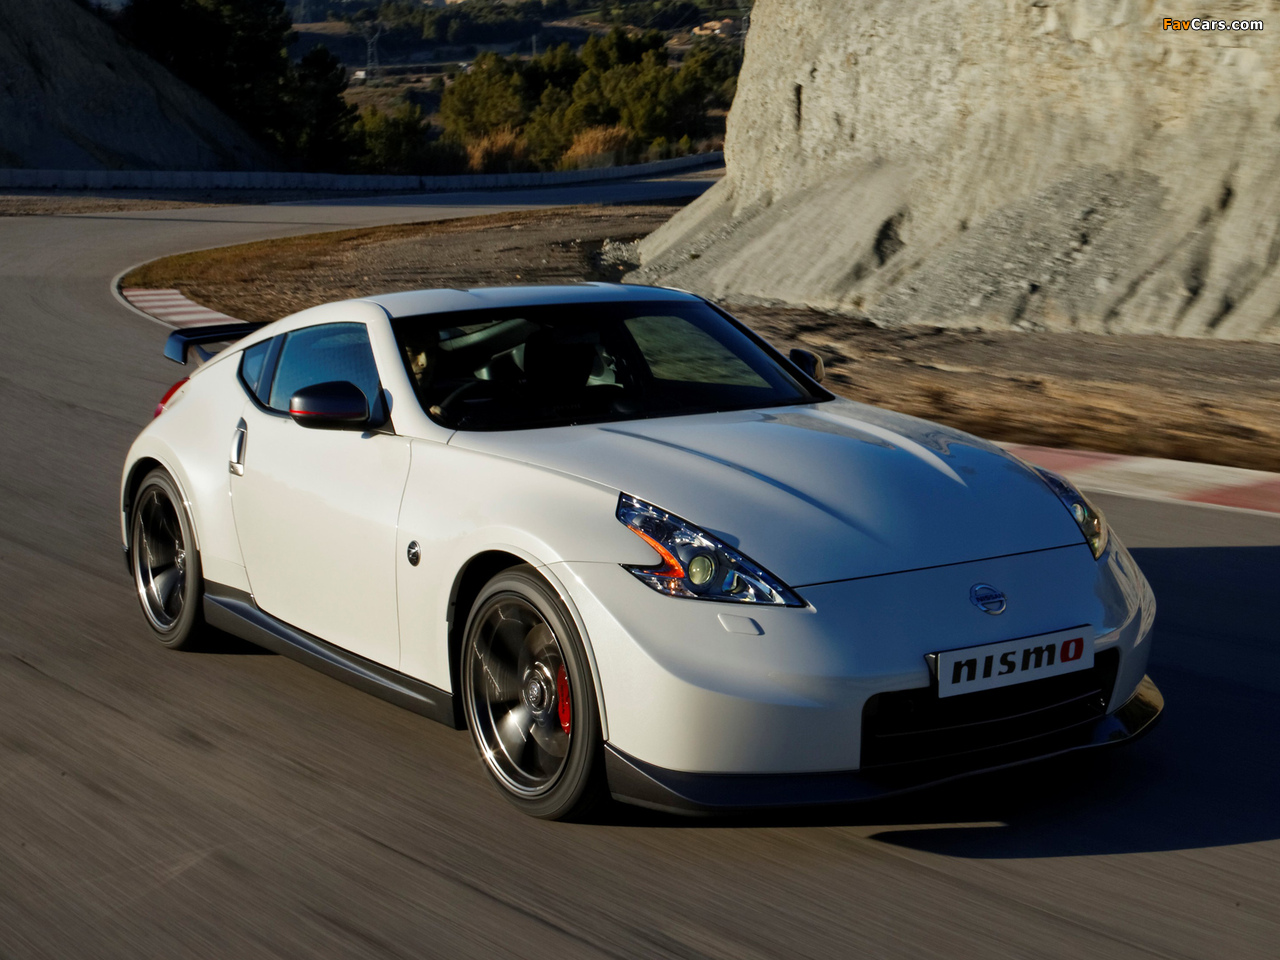 2013 370z wallpaper - photo #4